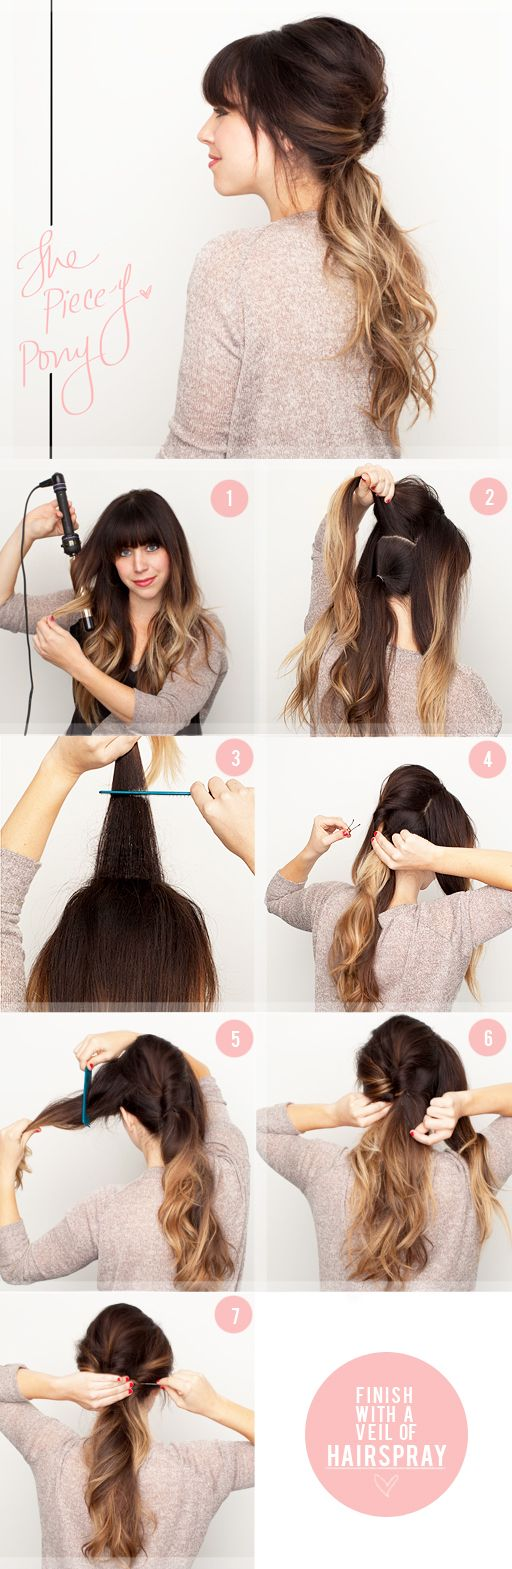 Admirable 5 Diy Hairstyles Perfect For Pre Wedding Parties Short Hairstyles For Black Women Fulllsitofus